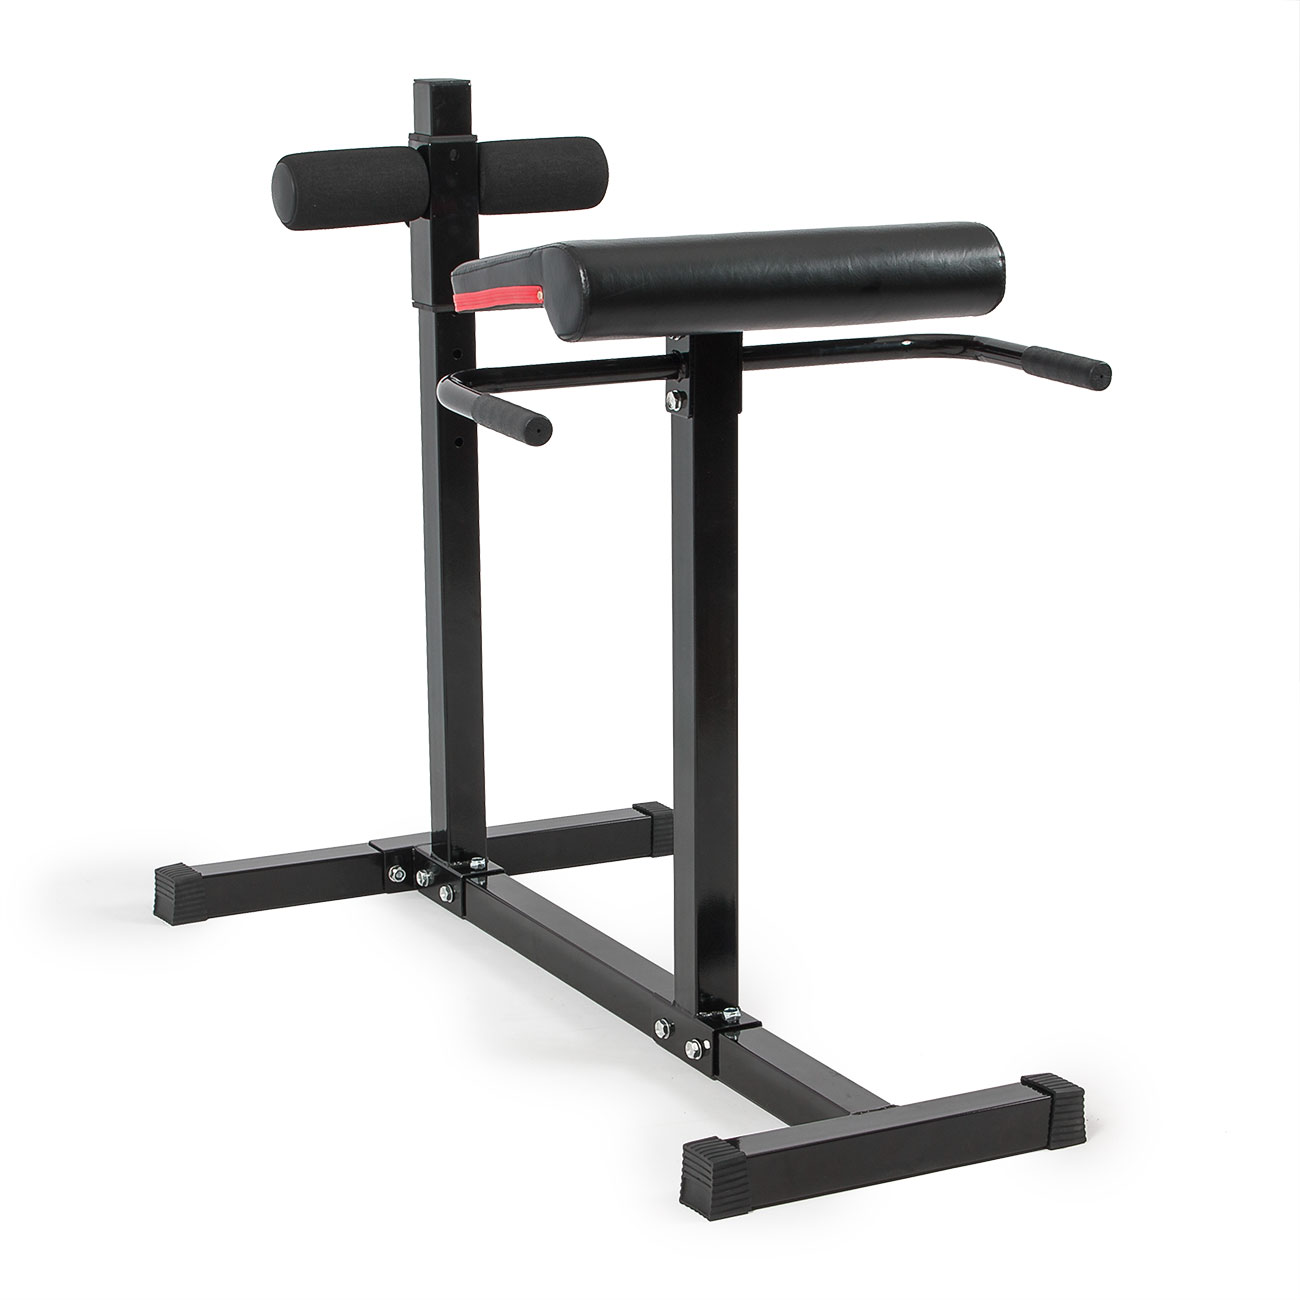 roman chair gym equipment big and tall mesh drafting akonza hyper extension bench sit up abs workout exercise adjustable walmart com